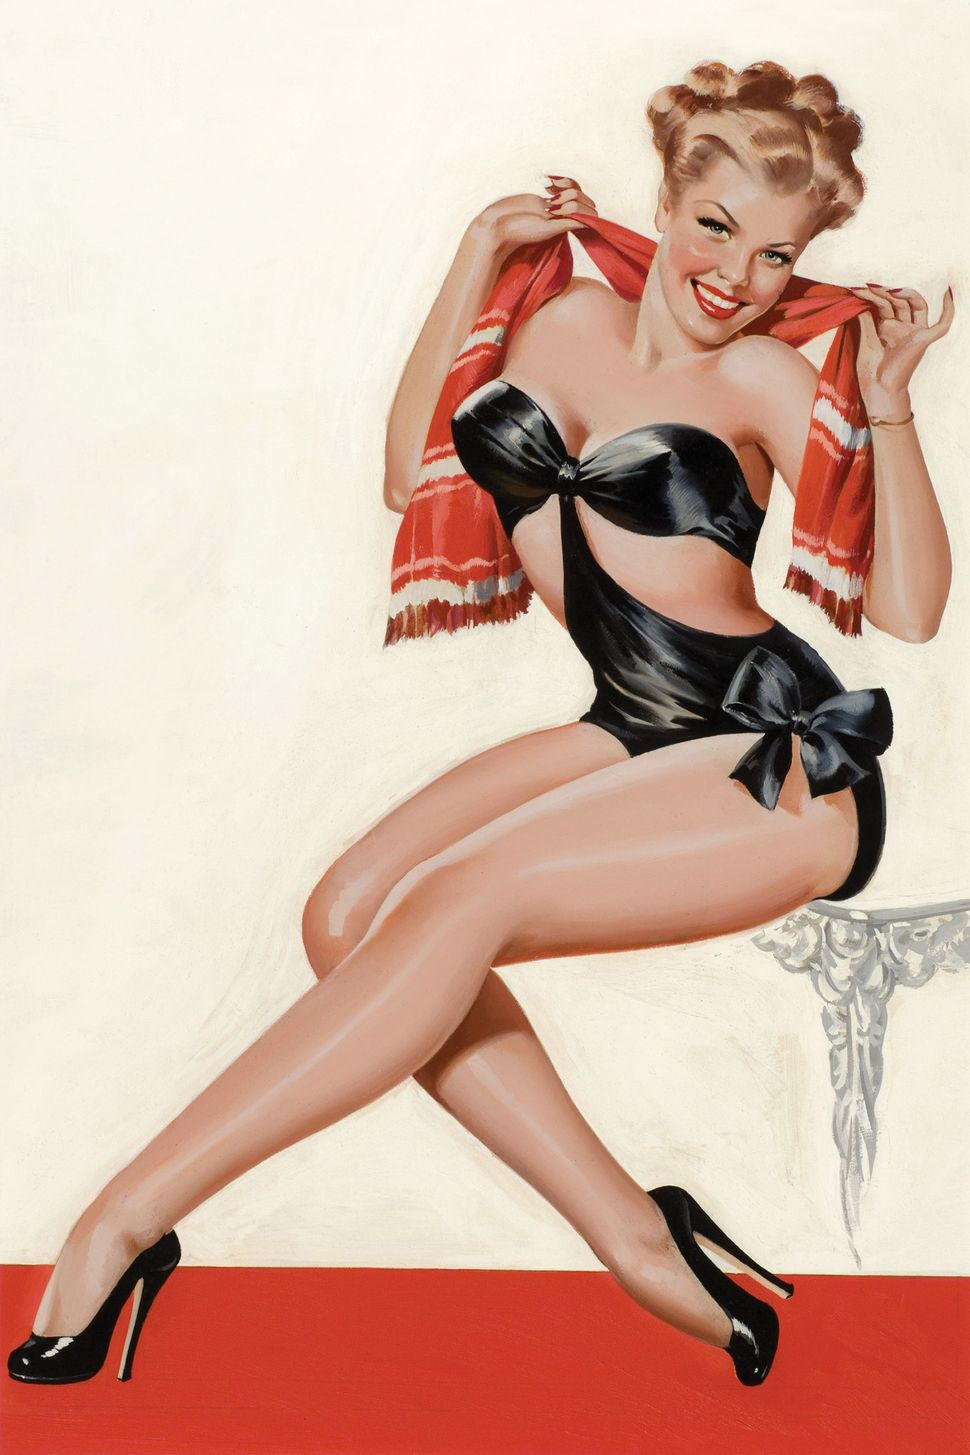 Pin By Berserk Vikings On Makeup Ideas: Your Visual Guide To The Timeless Queens Of Pin-Up